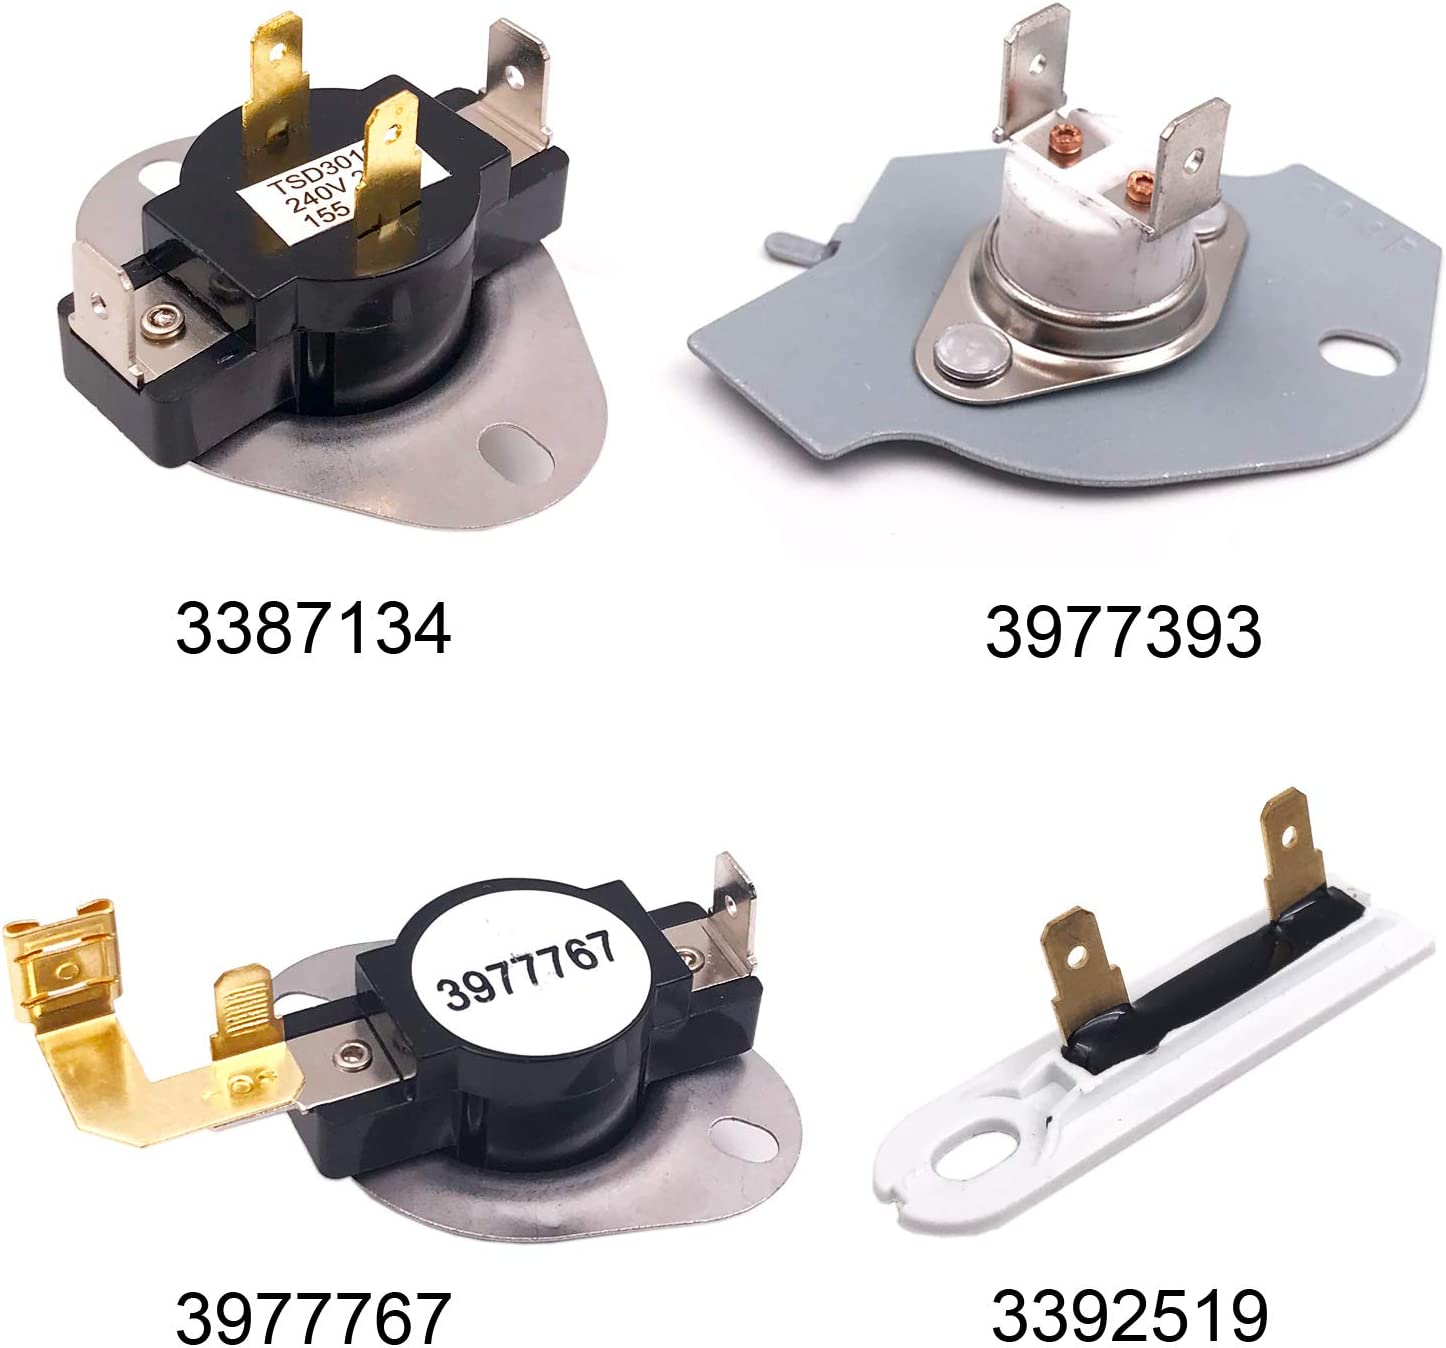 3387134 Dryer Thermostat 3392519 Dryer Thermal Fuse 3977767 Dryer Thermostat 3977393 Thermal Fuse Compatible with Whirlpool Kenmore Maytag KitchenAid Dryer Replaces Parts Replaces Parts 3399693